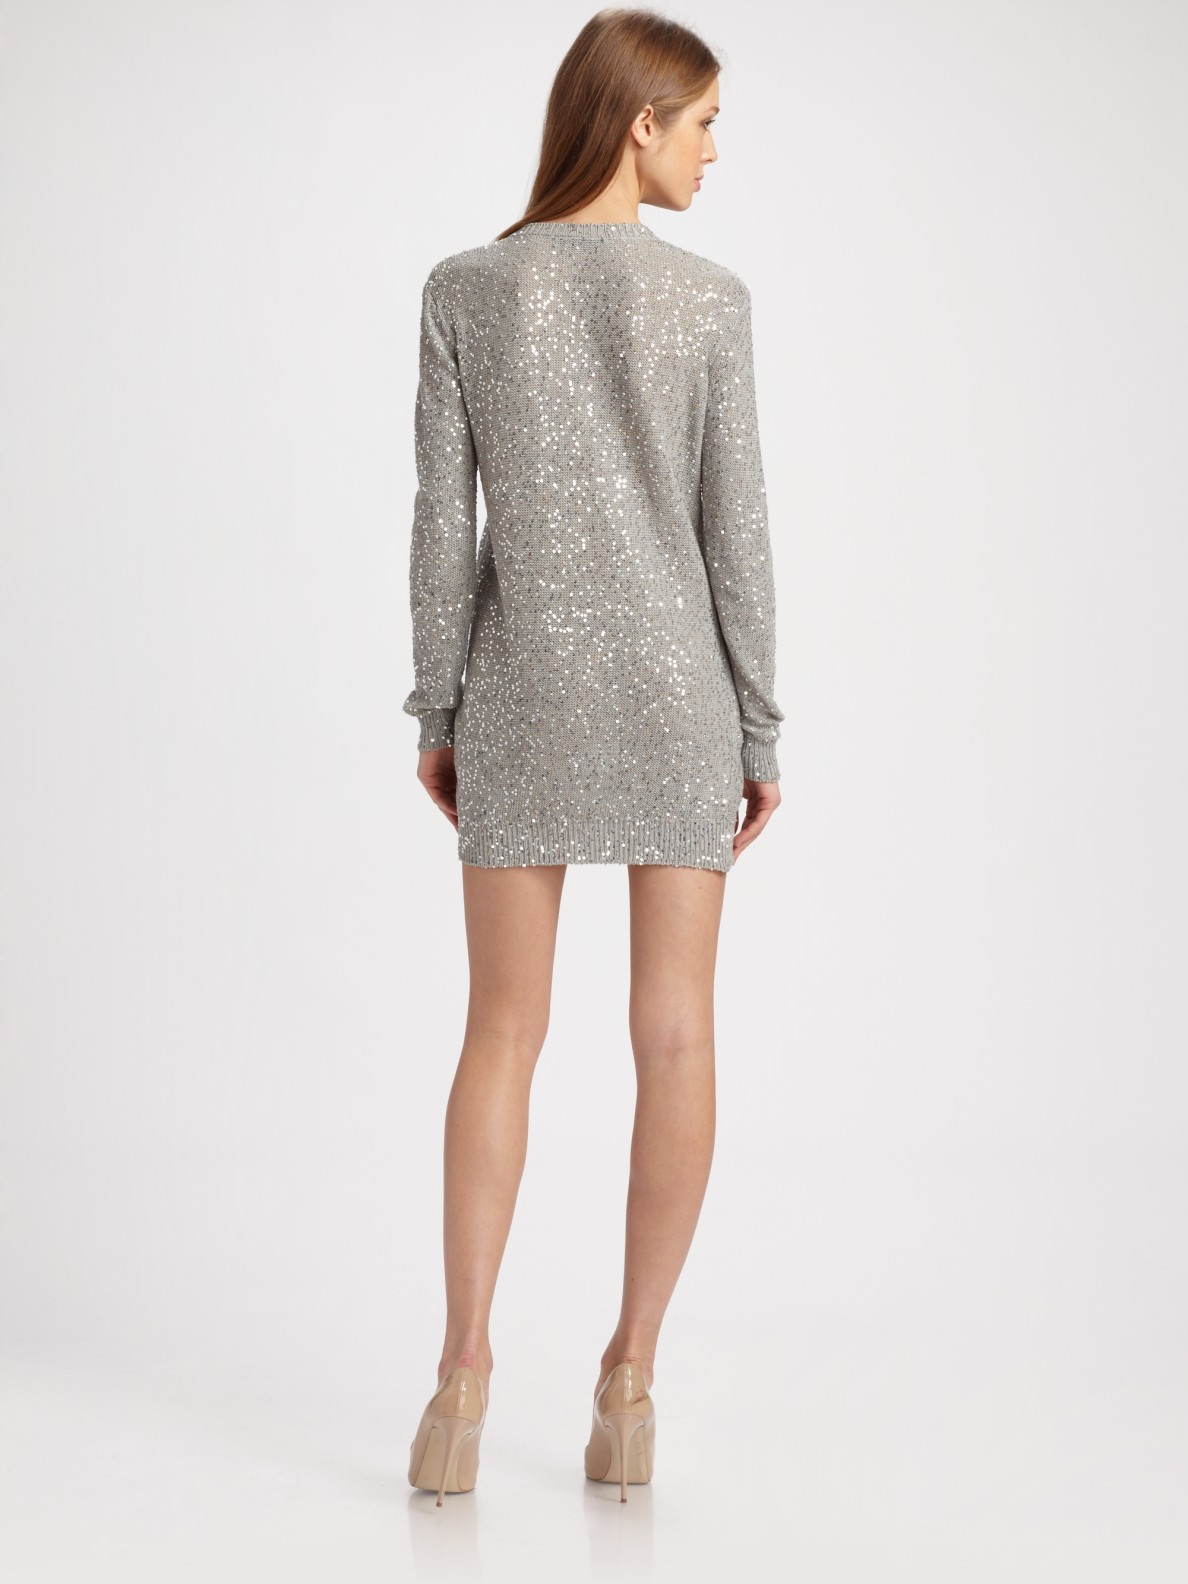 Stella mccartney Sequin V-neck Sweater Dress in Gray  Lyst